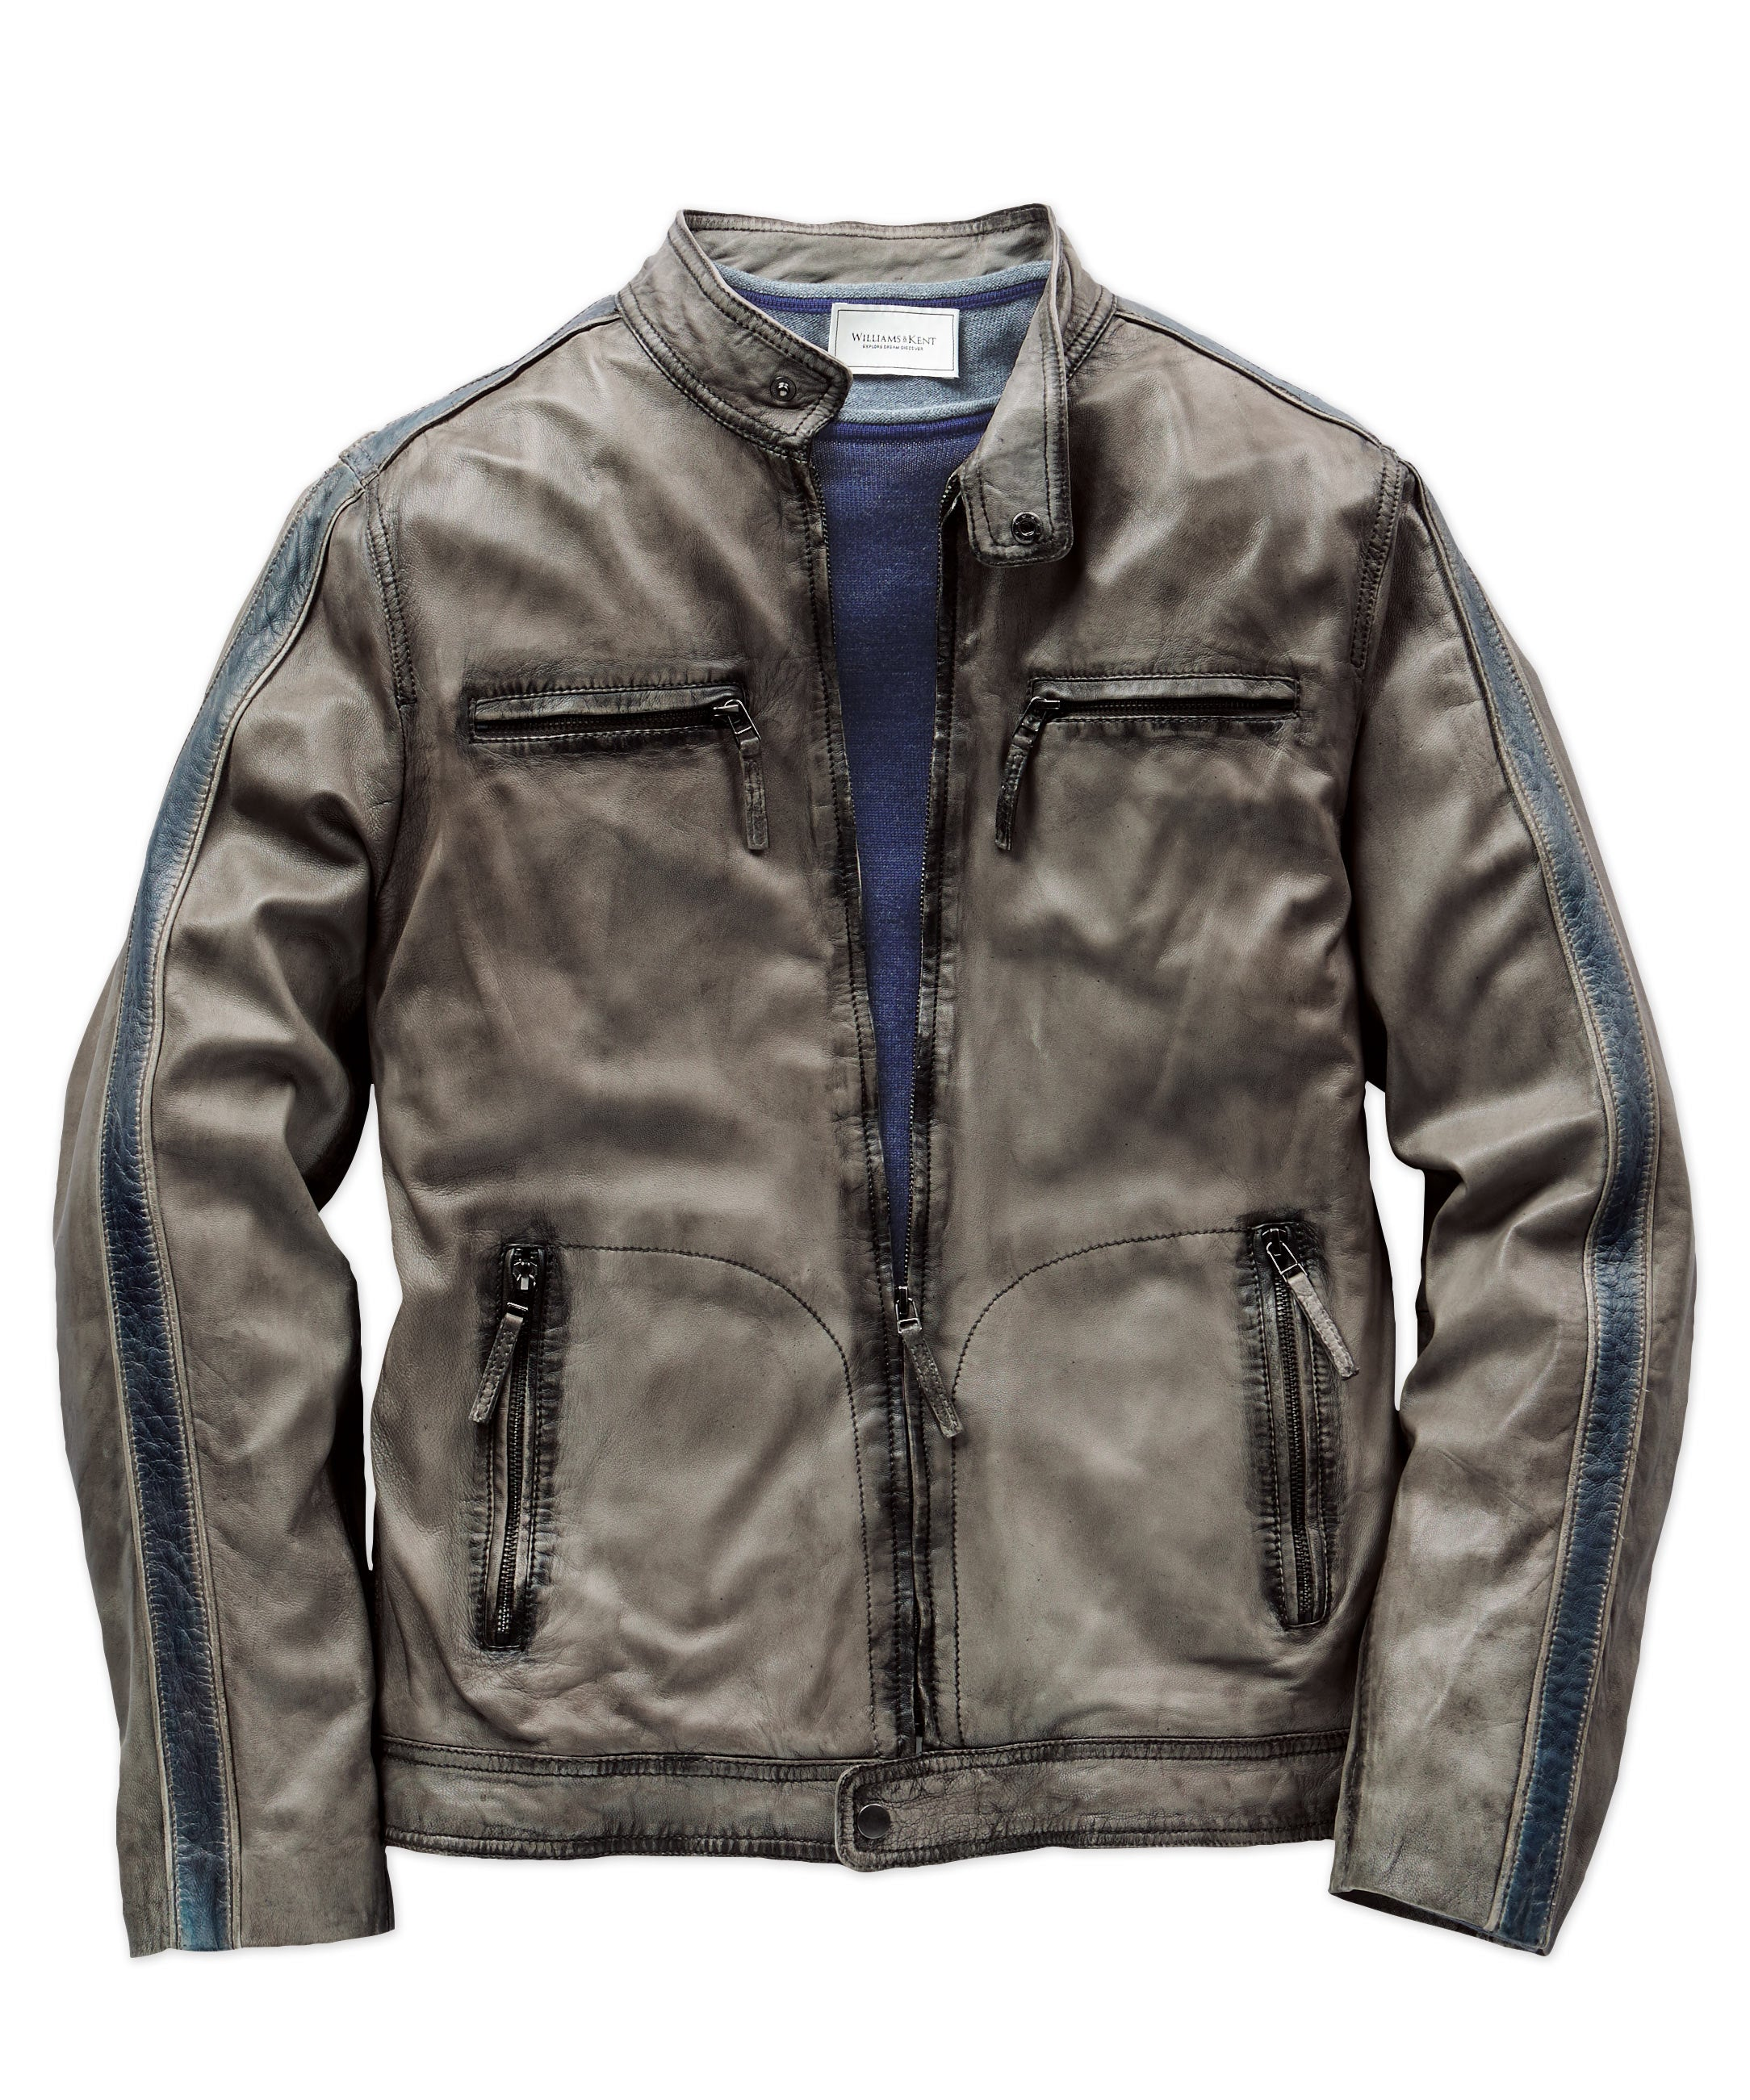 Two-Tone Lamb Leather Moto Jacket